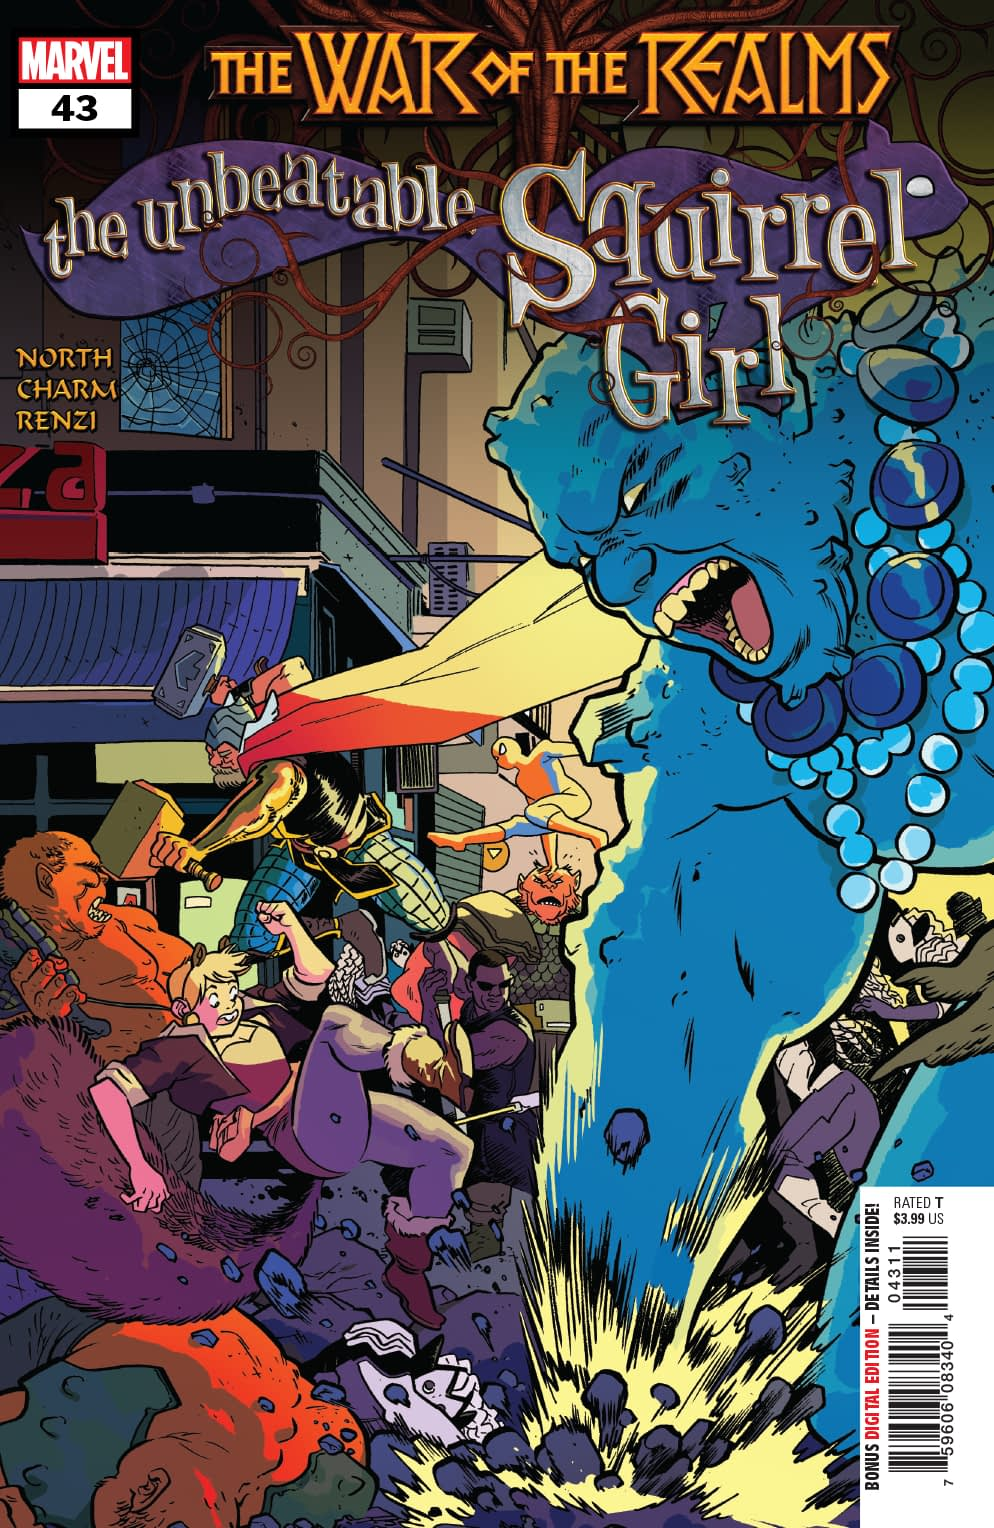 How Squirrel Girl Joins the War of the Realms in Next Week's Unbeatable Squirrel Girl #43